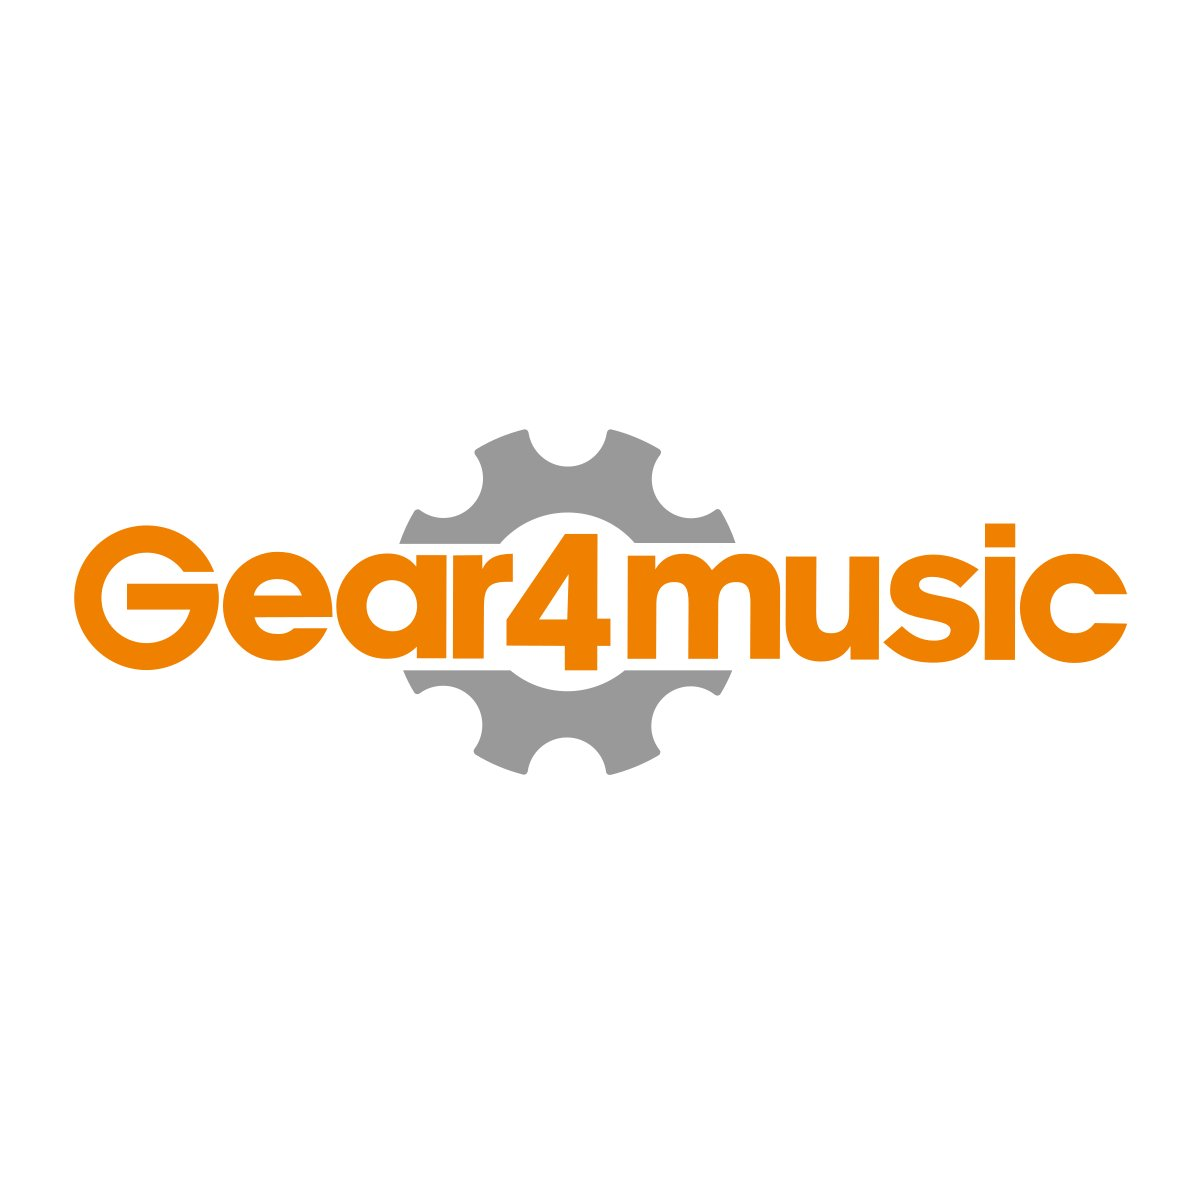 Médiator par Gear4music, 0.71 mm